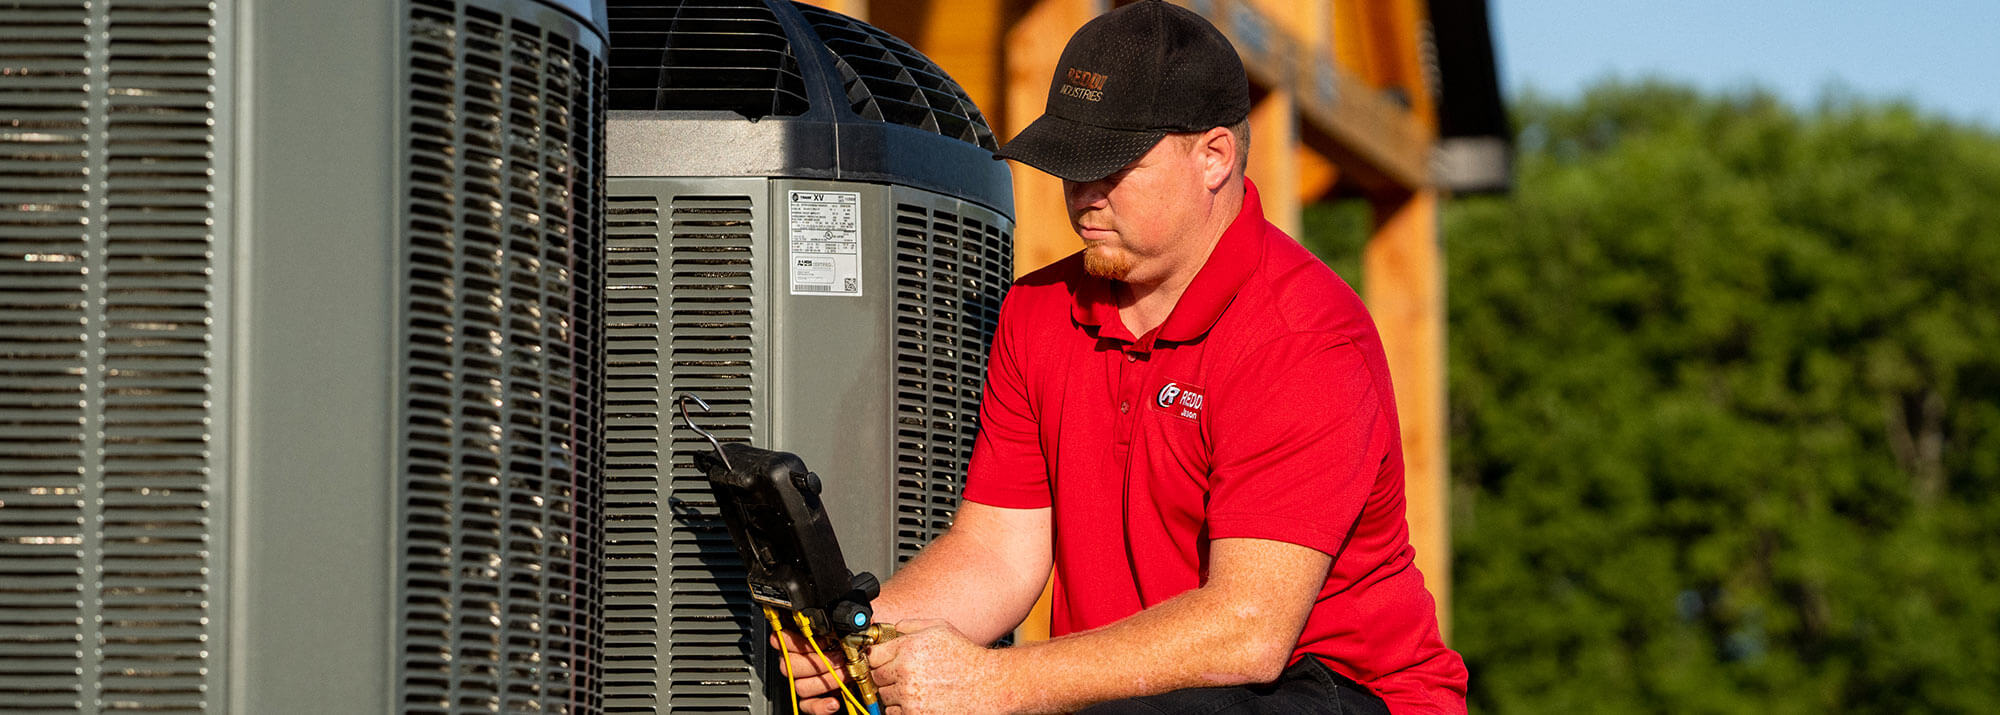 Heating and Cooling Tech Fixing Air Conditioner